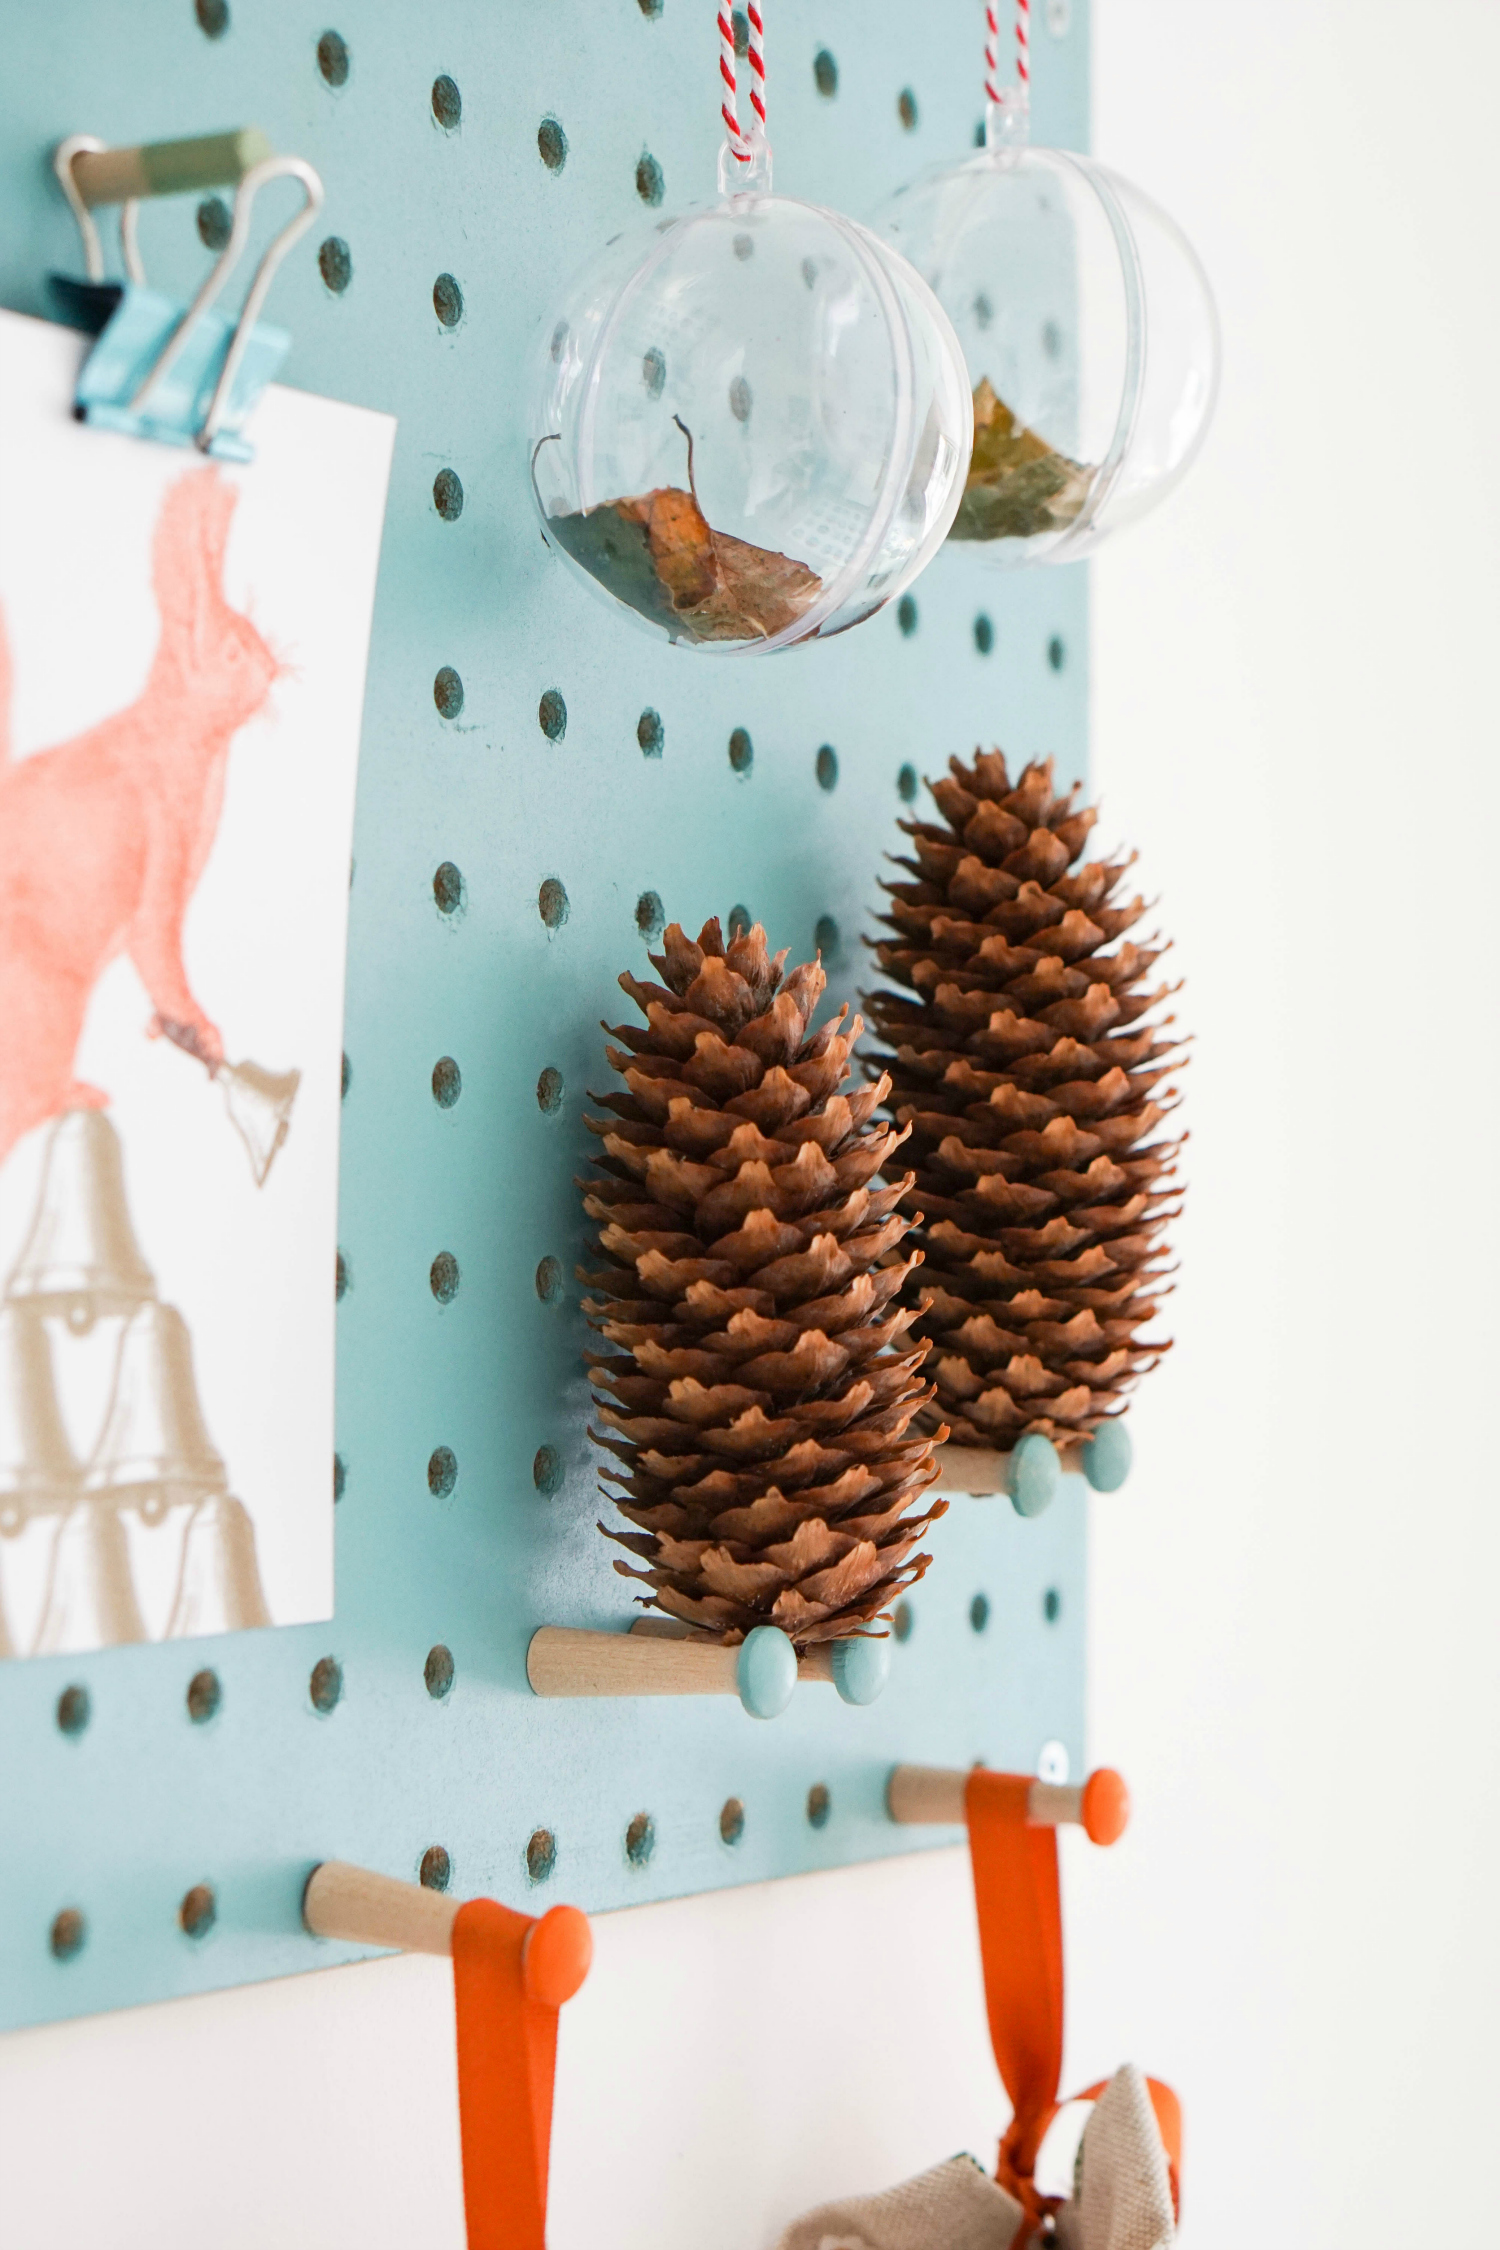 The Ordinary Lovely: Styling a pegboard for autumn